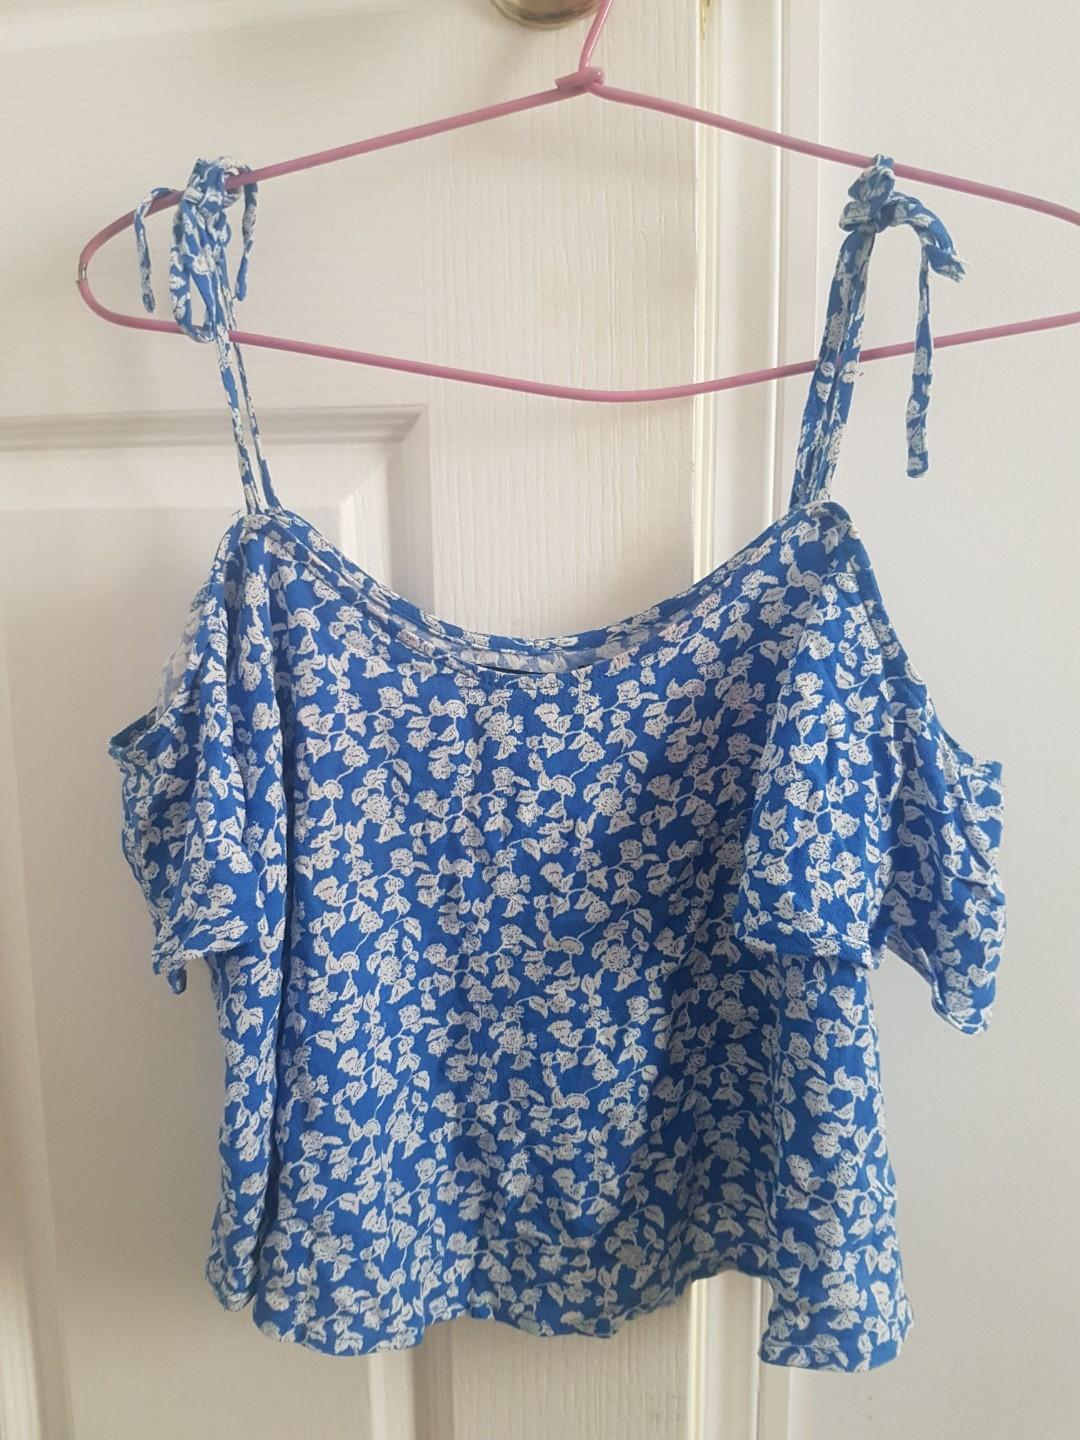 Blue and white flower print off shoulder strap top